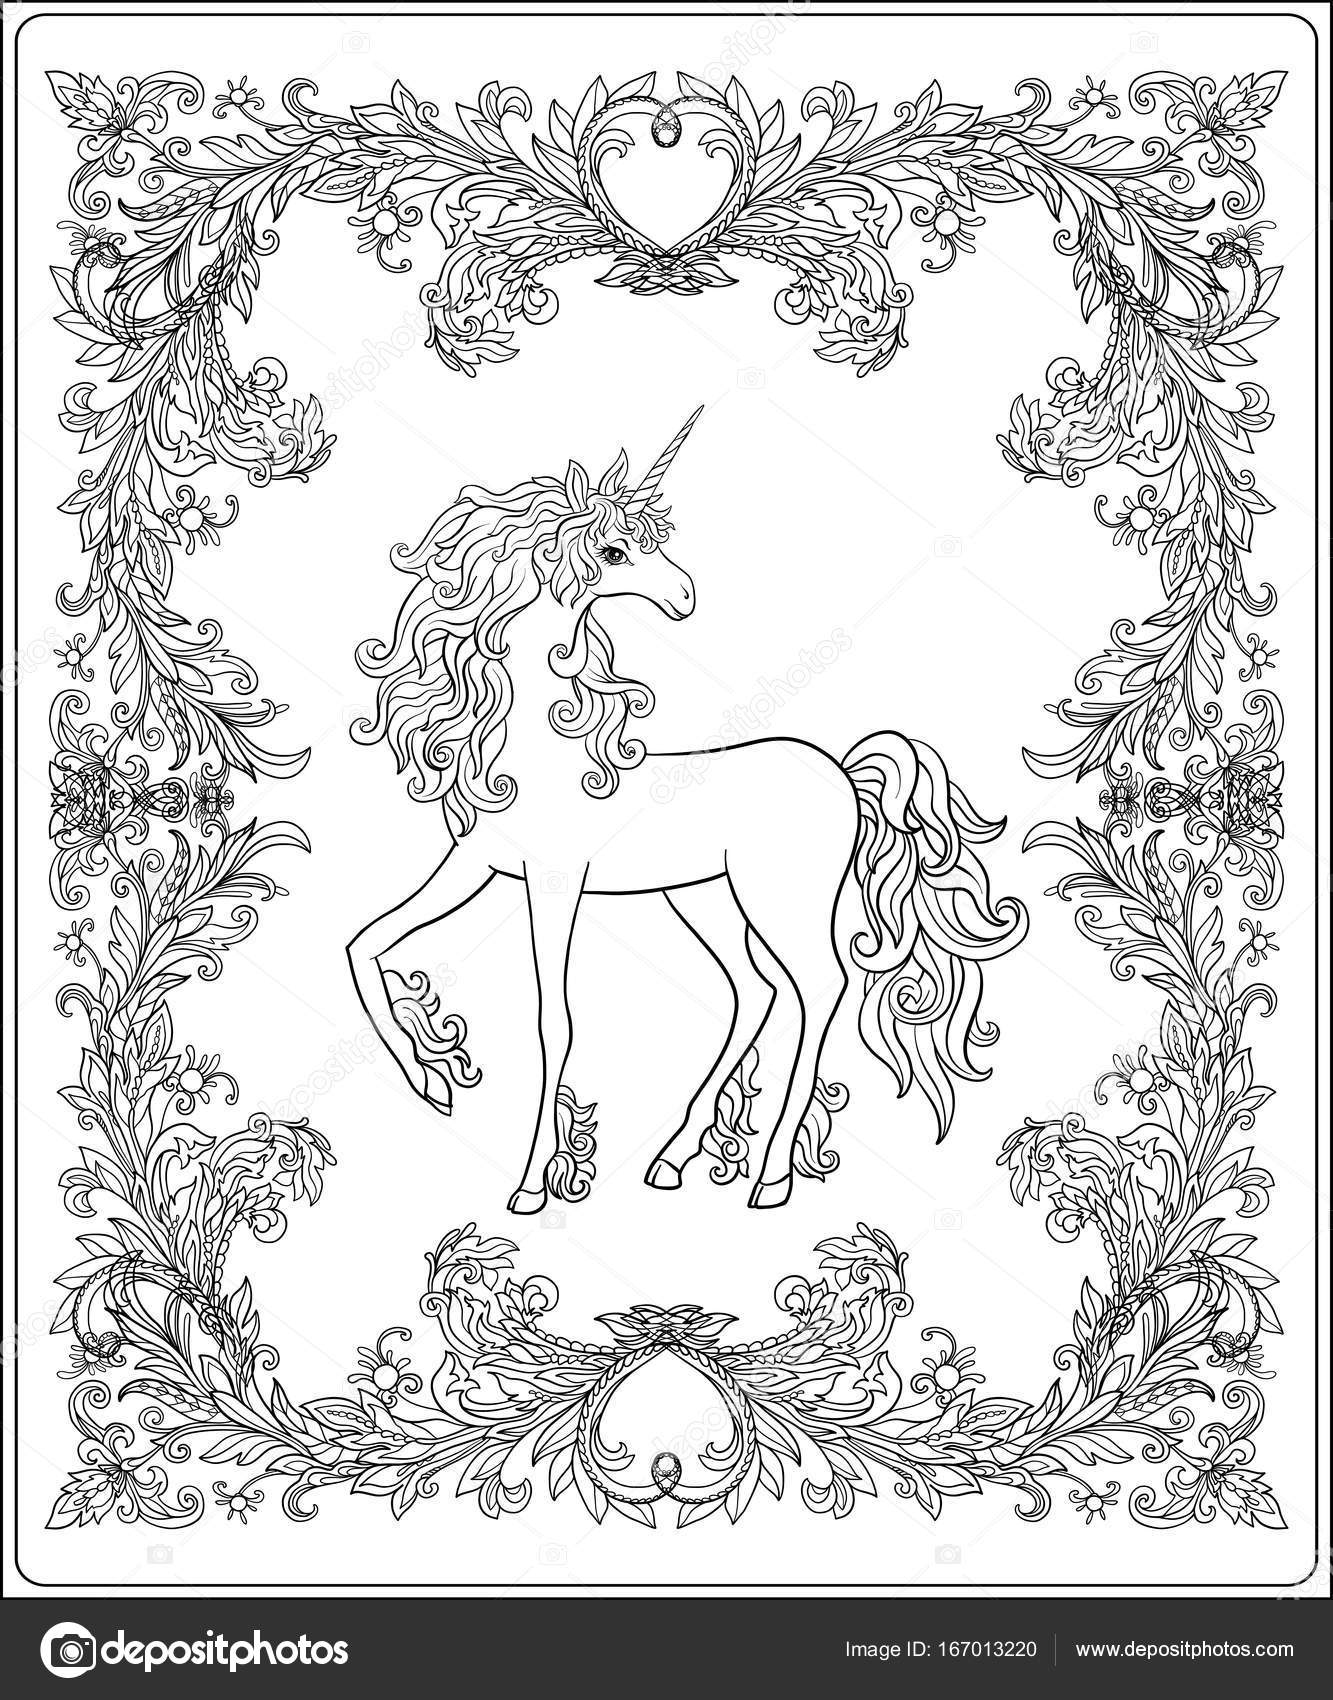 Unicorn in the frame, arabesque in the royal, medieval style. Ou ...